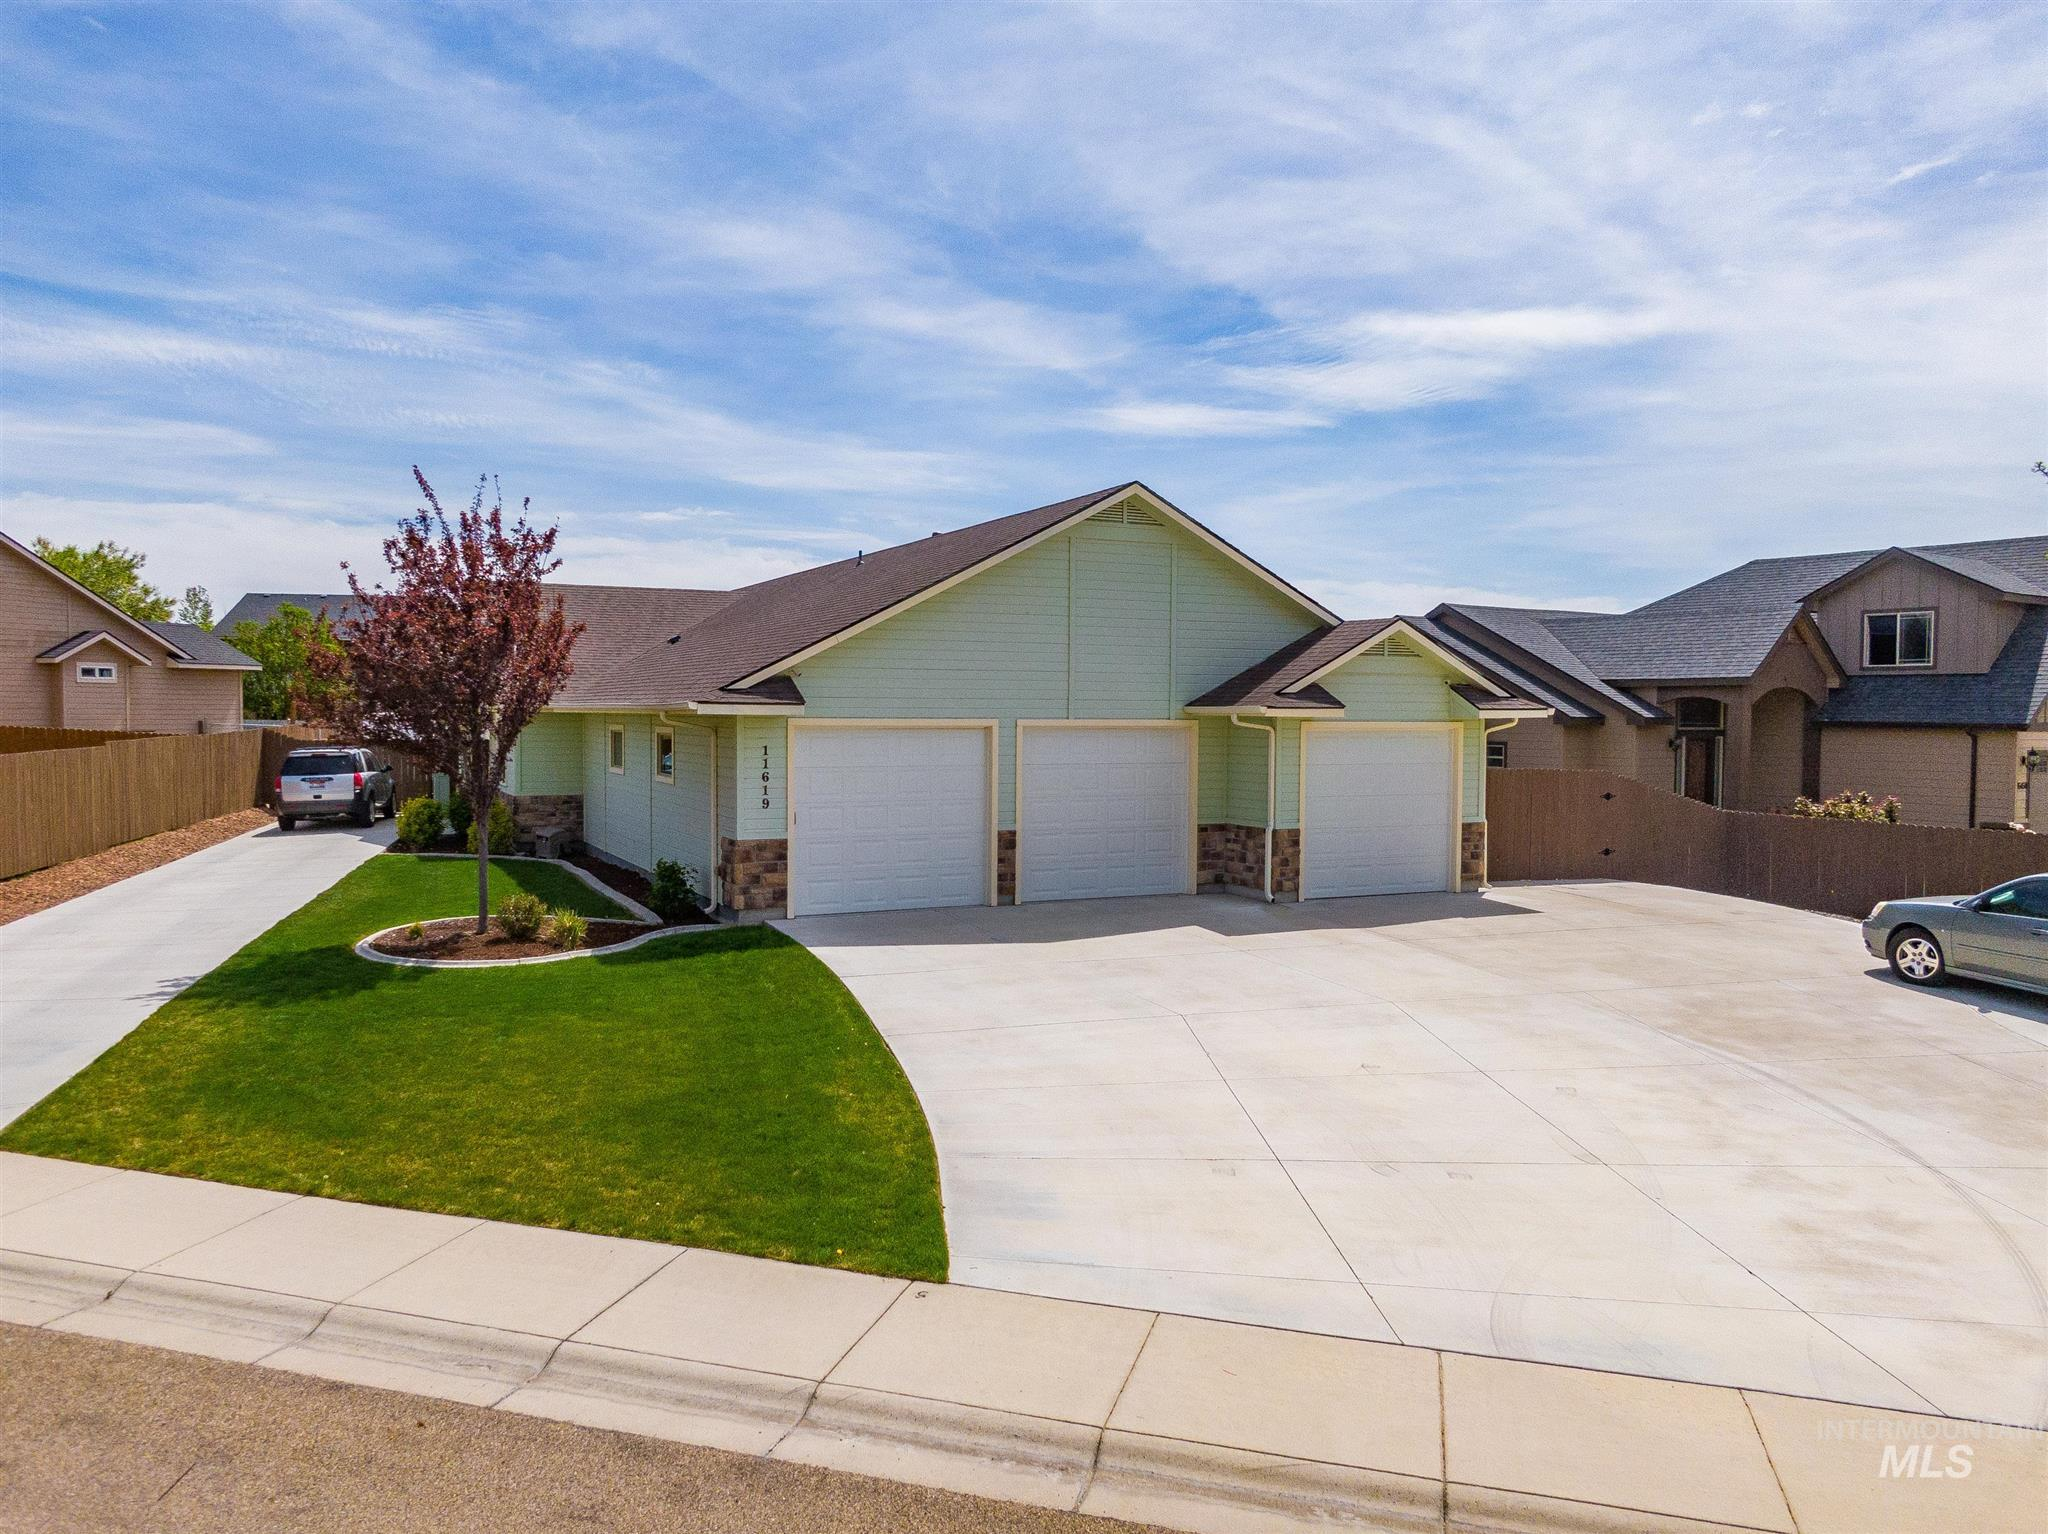 11619 W Hawkins Ave Property Photo - Nampa, ID real estate listing